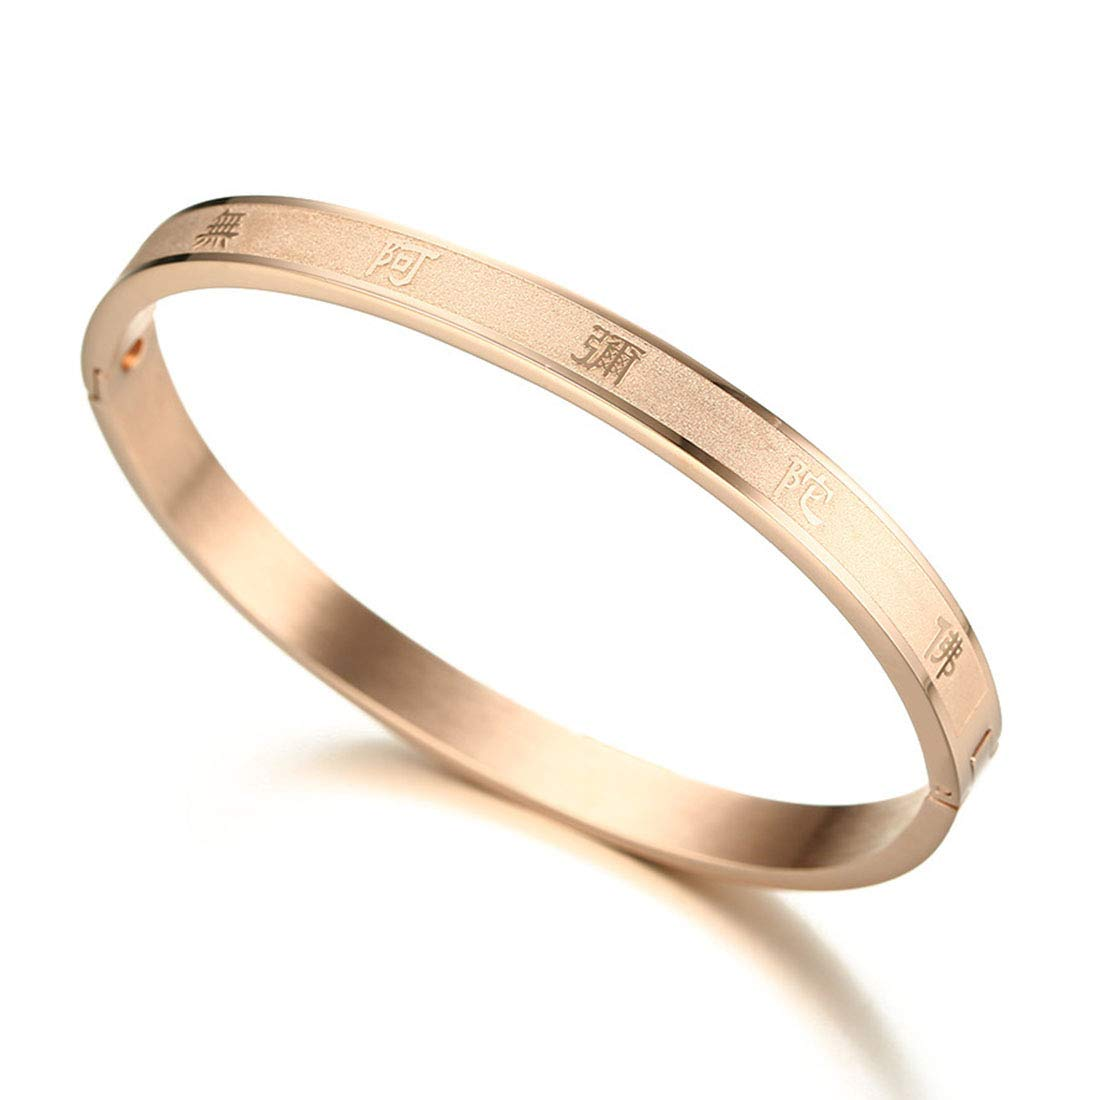 Womens Surgical Steel Tibet Buddhist Six Words Cuff Bangle Bracelet 6.7 Silver/Gold/Rose Gold ltd BRJSF00077R